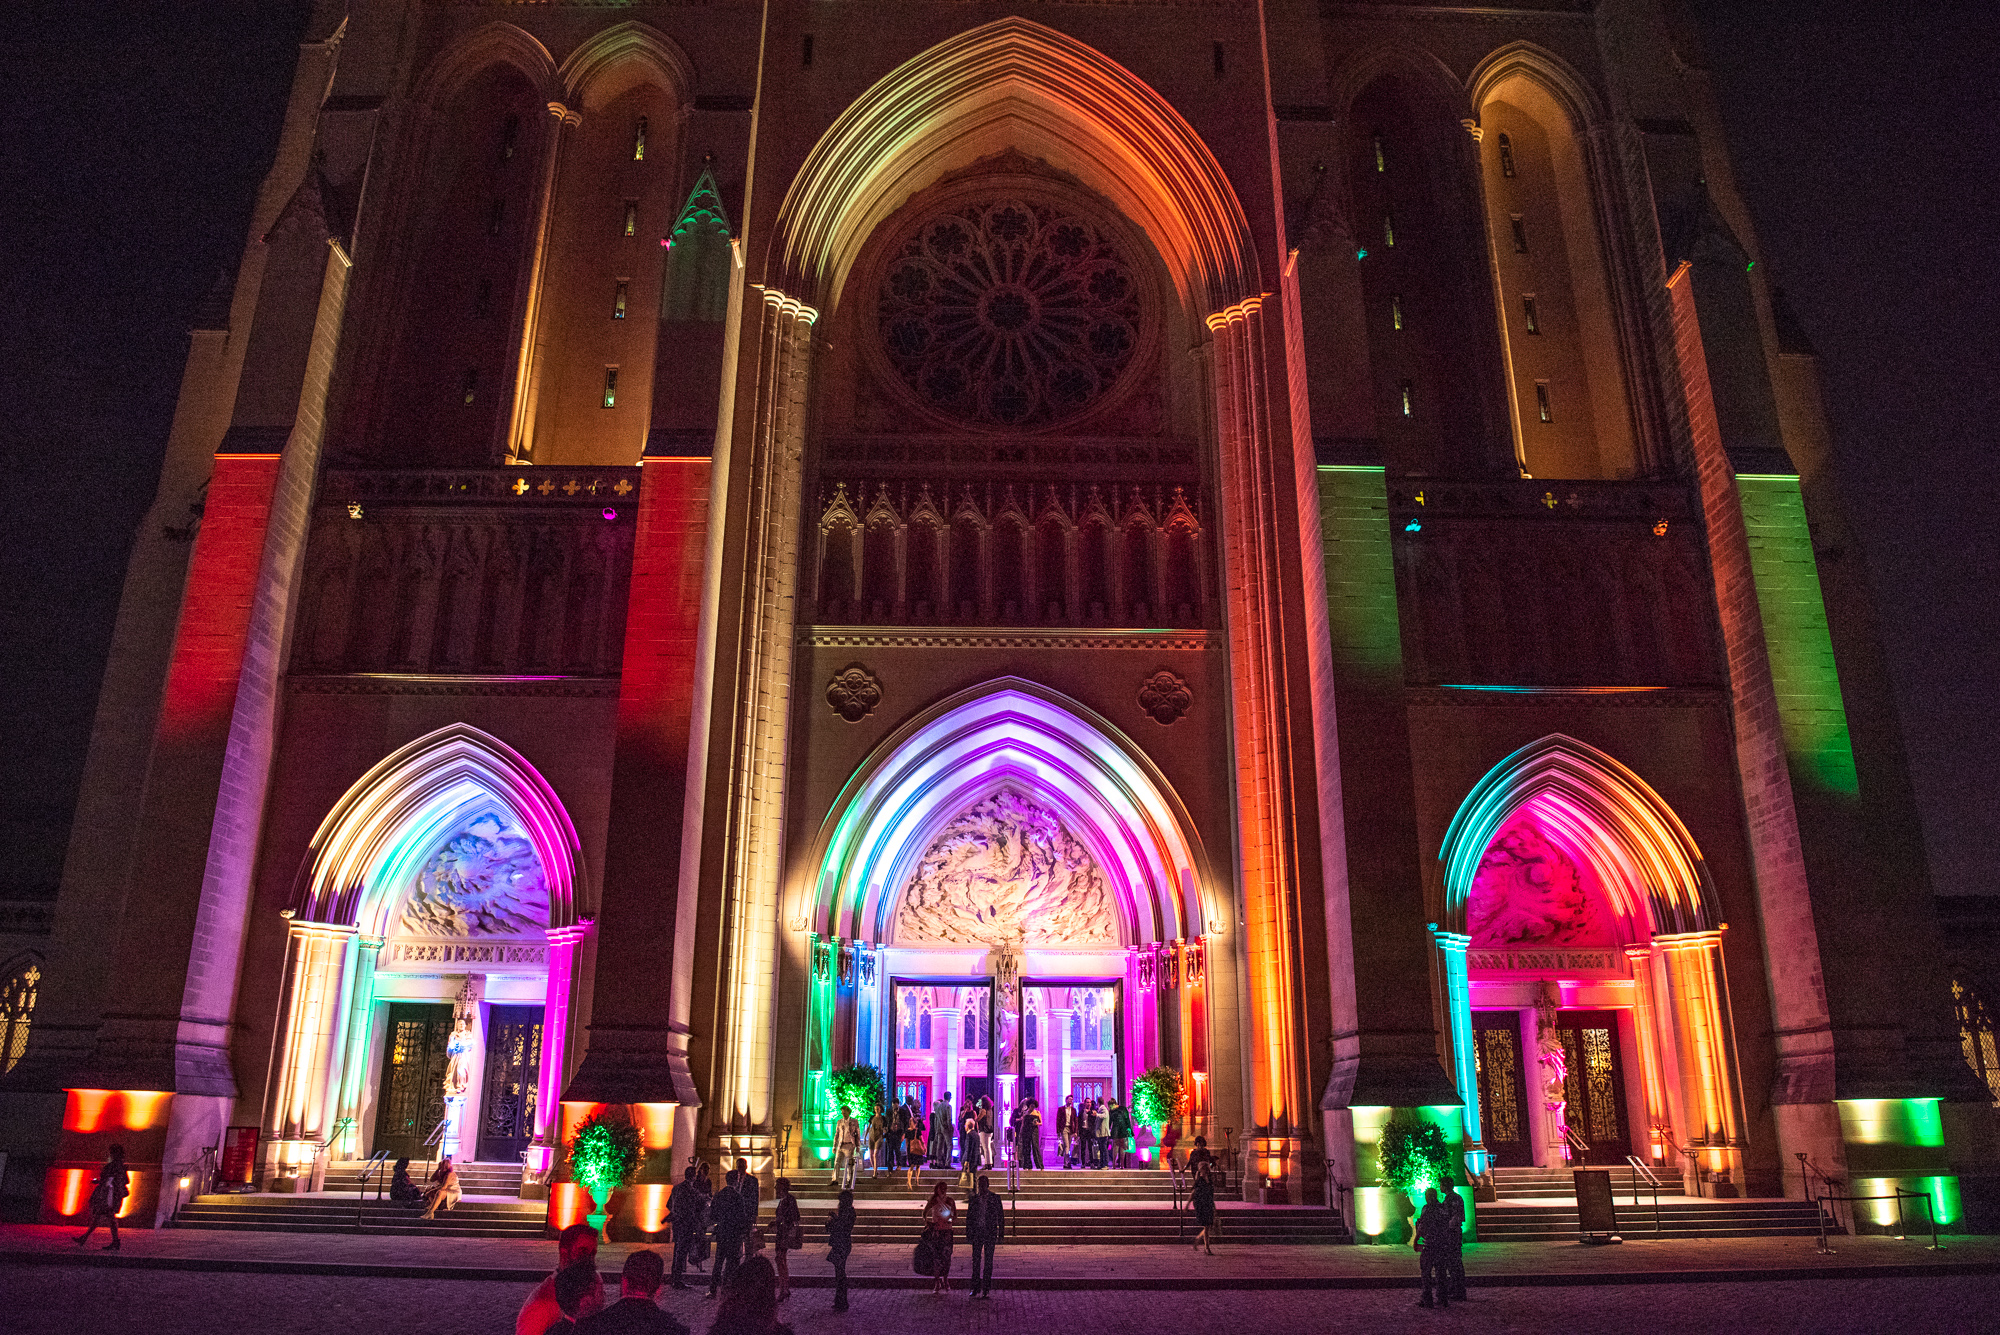 "Anyone who attended the Human Rights Campaign's 7th annual Chefs for Equality gala on October 9 and left hungry did something wrong! The Washington National Cathedral was awash in rainbow as it played host to hundreds of Washingtonians eager to show their support for the HRC Foundation and their mission of fighting for full LGBTQ equality. And show their support they did, as the event raised{ } more than$300,000 for the foundation, through ticket sales, a silent auction and a live auction. More than 120 of the DMV's top chefs and mixologists were on hand to do the ""deliciously defiant"" theme proud, serving up small bites (like foie gras macaroons and dan dan noodles in mini carryout containers) and cocktails to guests. The luckiest guests dined at private tables,{ }where celebrity chefs created lavish five-course paired meals. Back by popular demand, the ""5/10/15 Speed Diner"" ticket option allowed guests to purchase a seat at the intimate diner-style counters where they were treated to a specialty cocktail and a mini five-course tasting menu prepared by five pairs of renowned chefs. If you missed the fun, scroll through our photo gallery to get an insider's look! (Image:{ }Jeff Martin for Human Rights Campaign)"